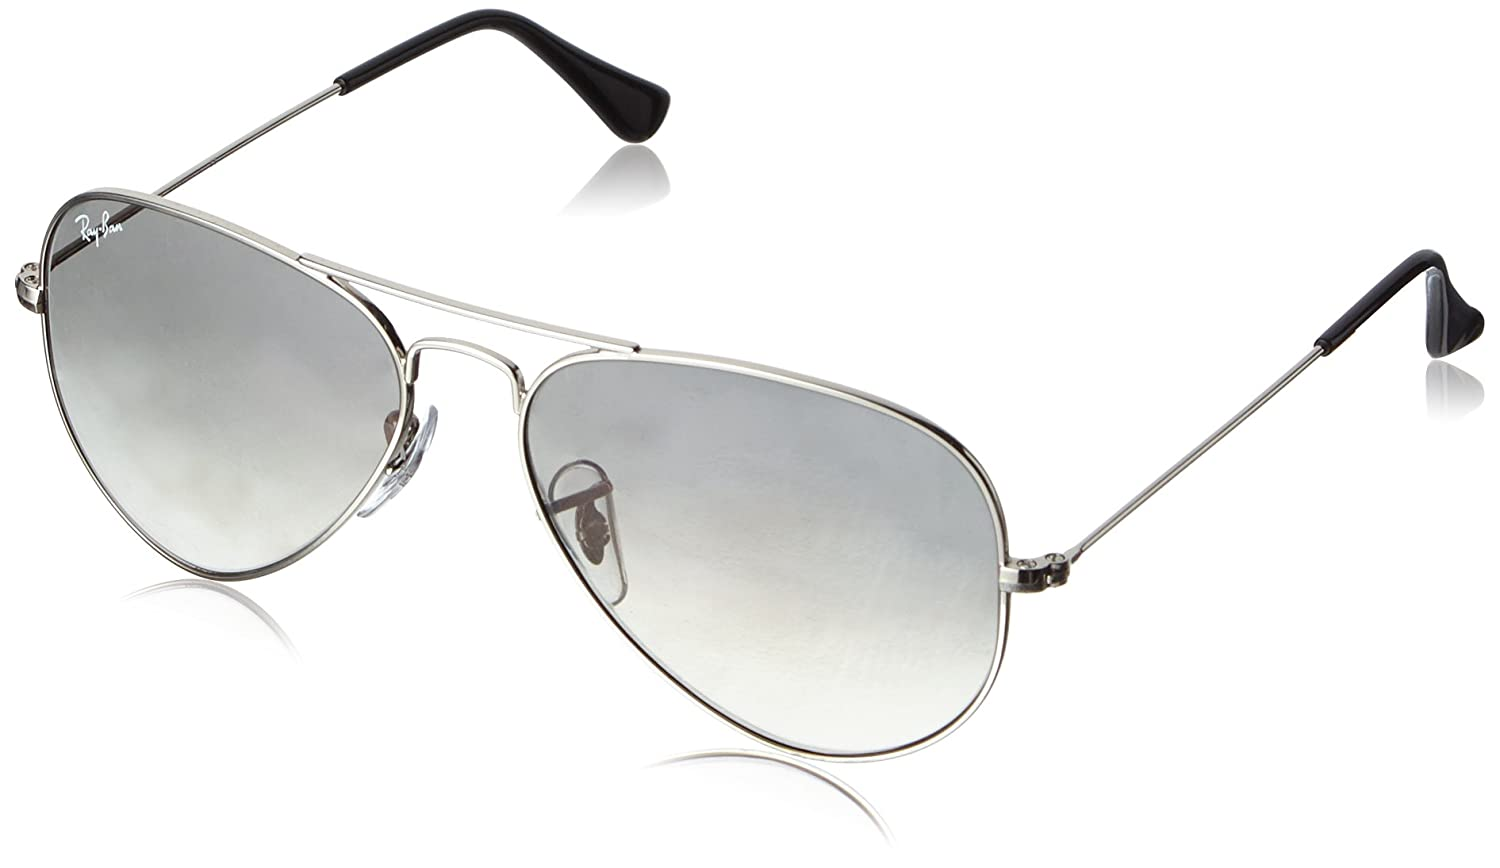 aviator ray ban sunglasses a8ha  Amazoncom: Ray-Ban 0RB3025 Aviator Metal Non-Polarized Sunglasses, Silver/  Crystal Grey Gradient, 55mm: Ray-Ban: Clothing